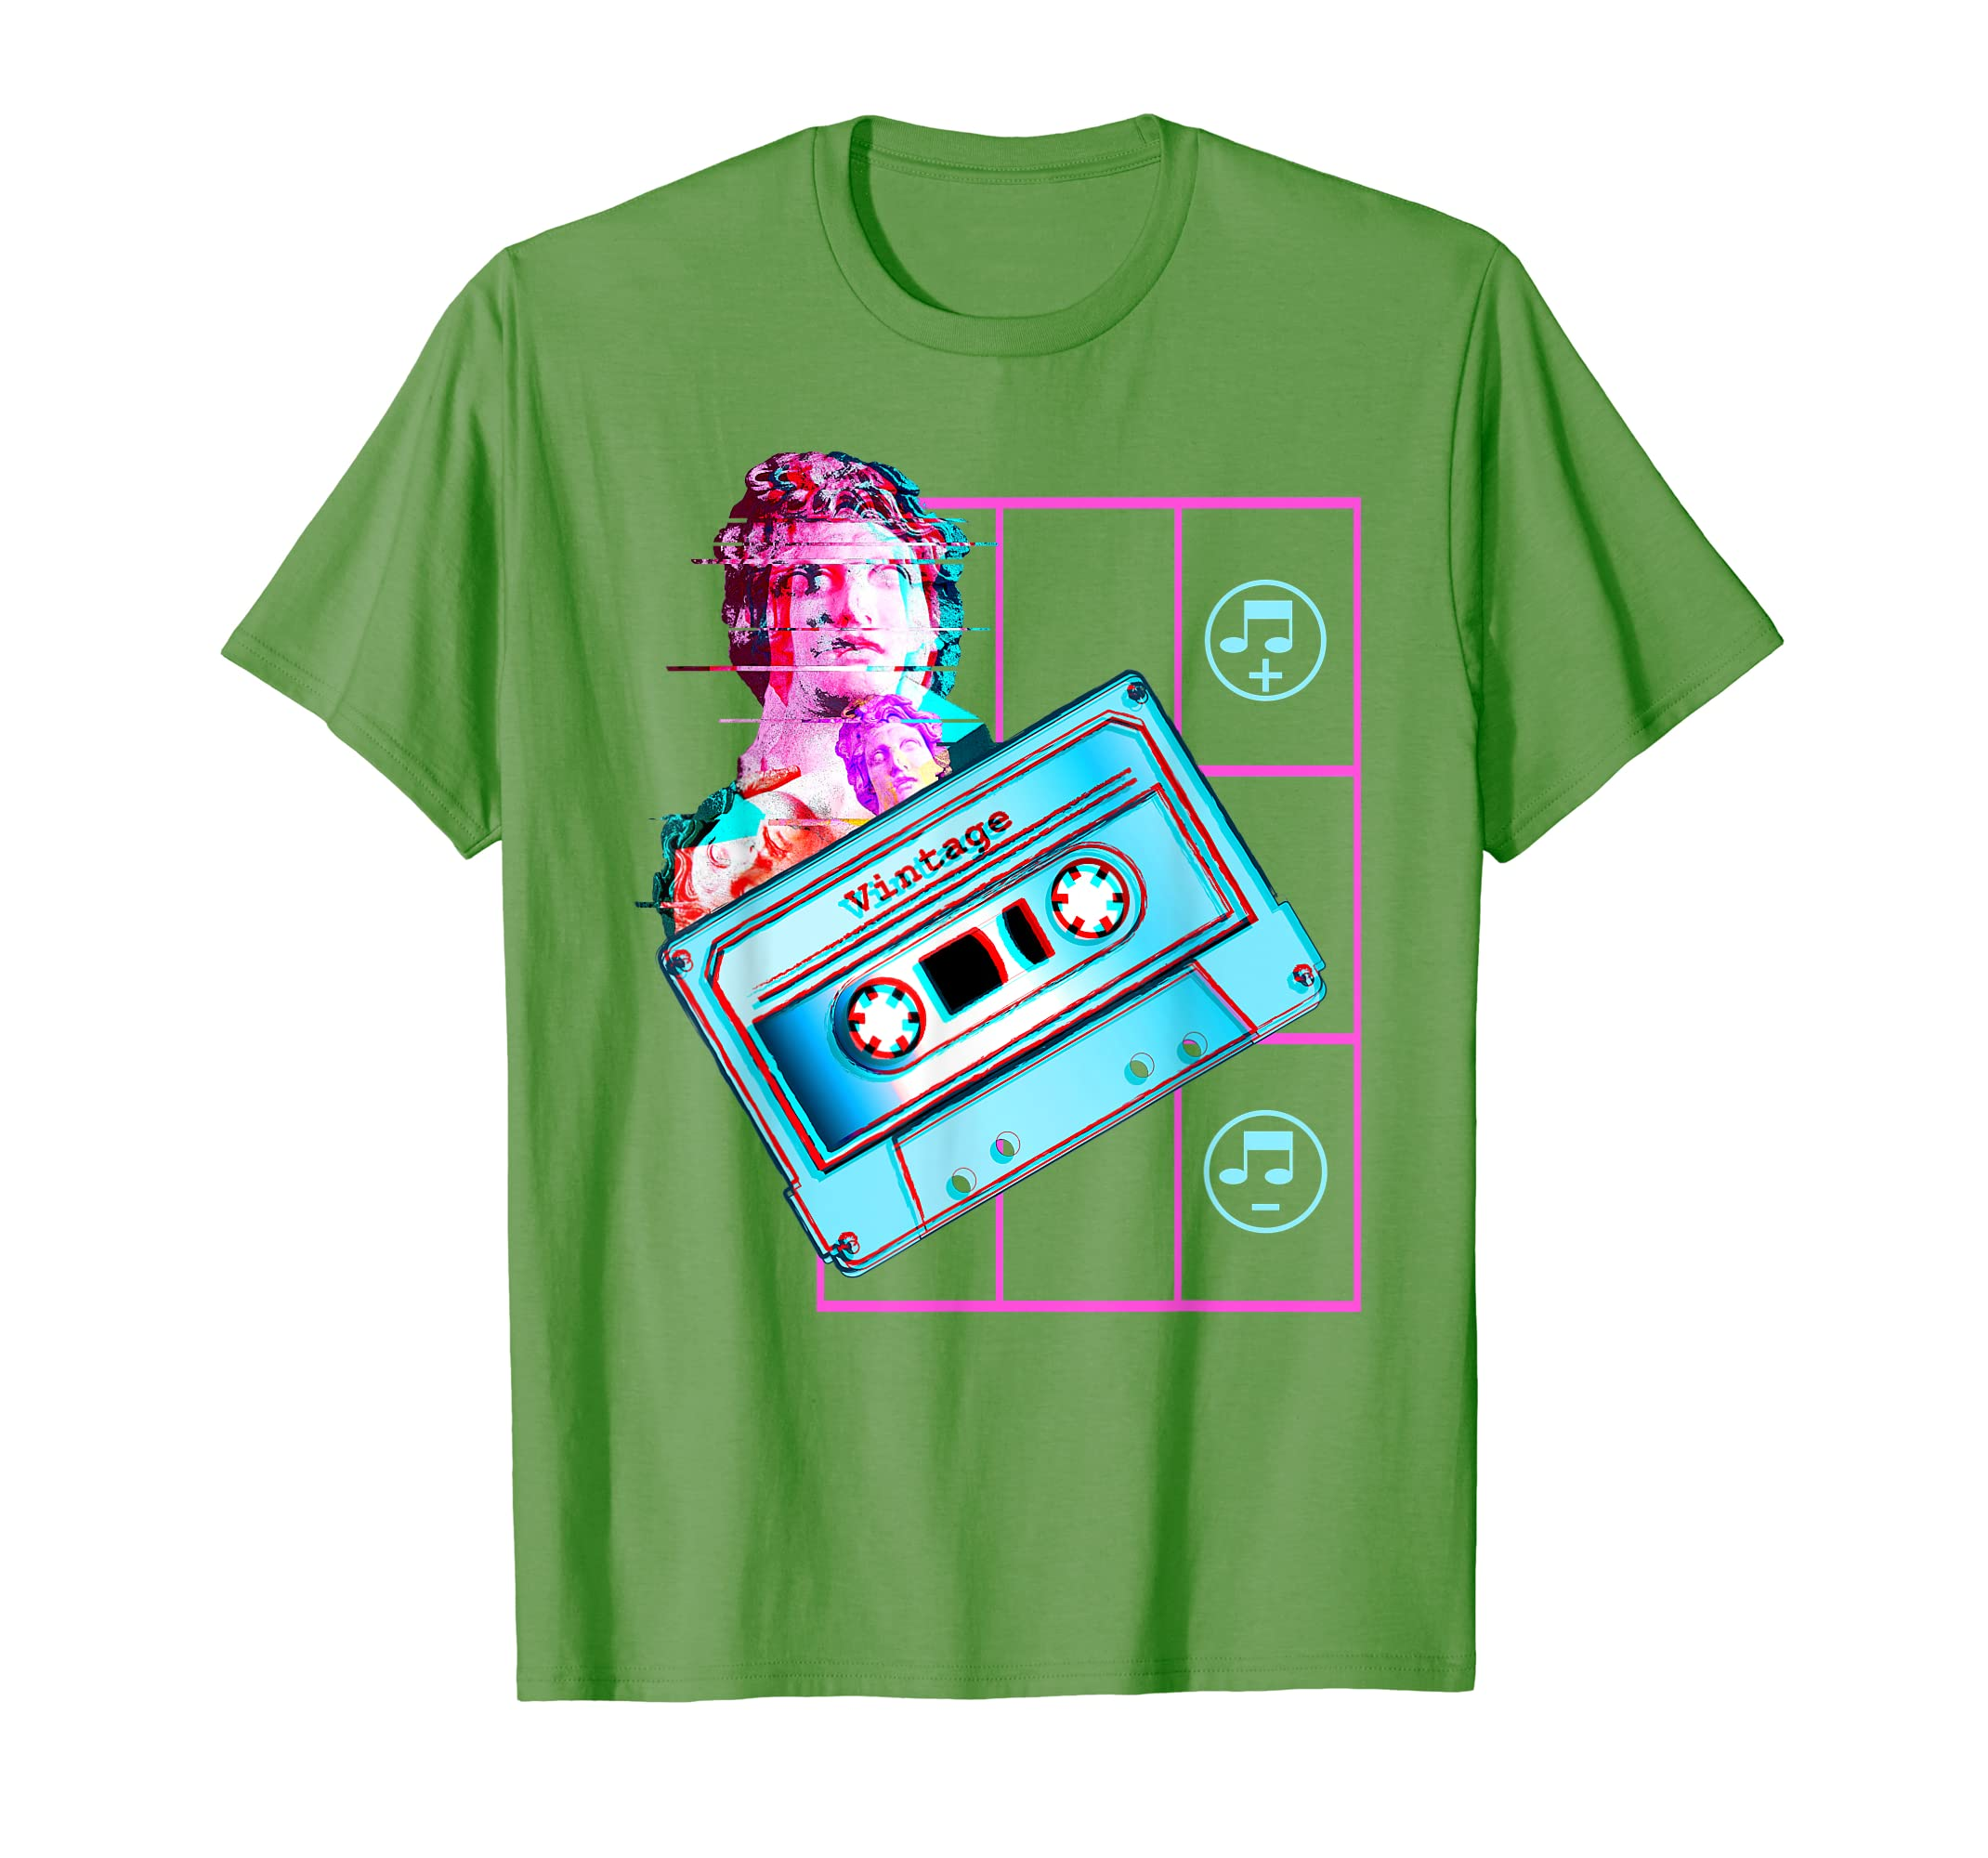 Amazon com: Retro Cassette Tape Vaporwave Aesthetic 80s 90s